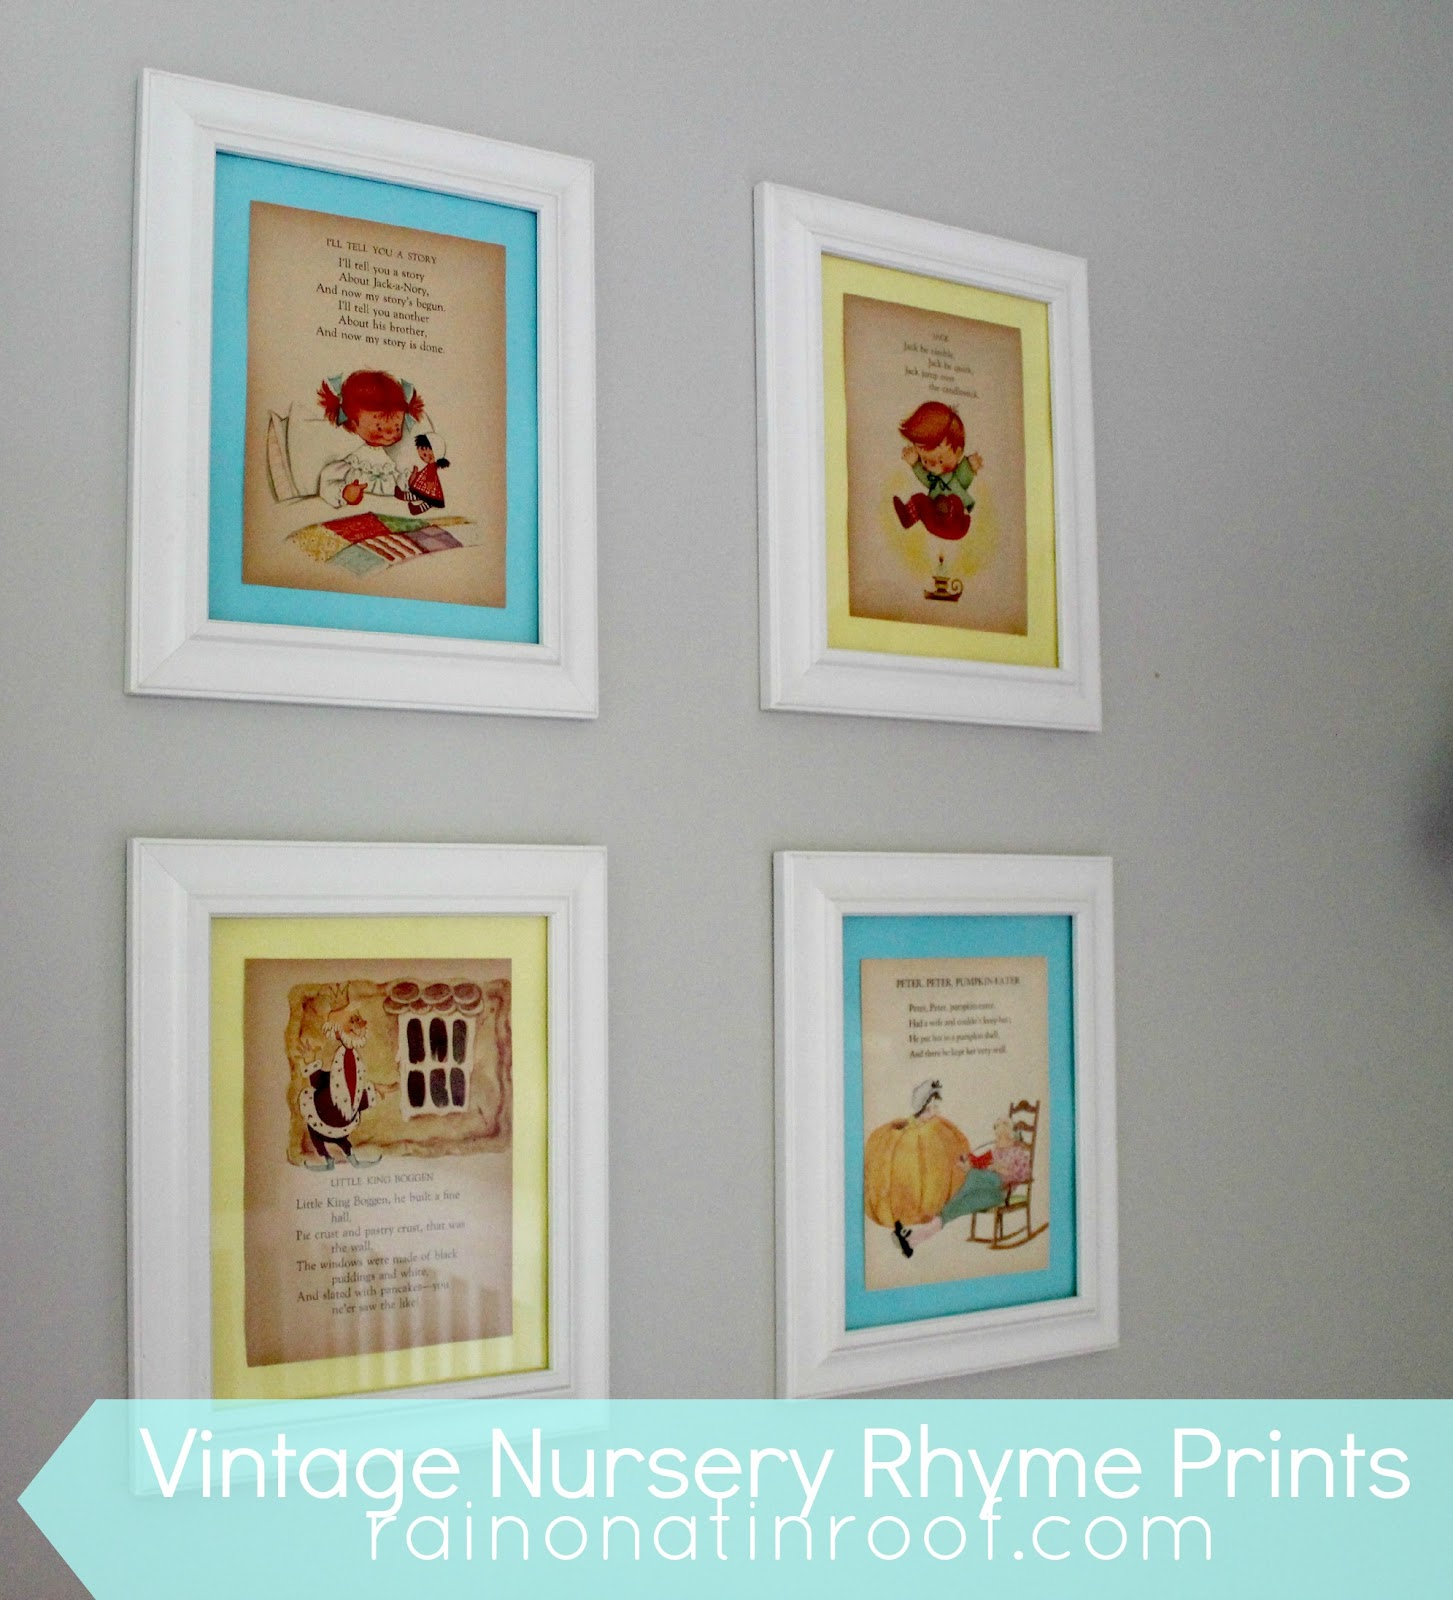 Diy vintage nursery rhyme prints simple cheap for Print posters online cheap